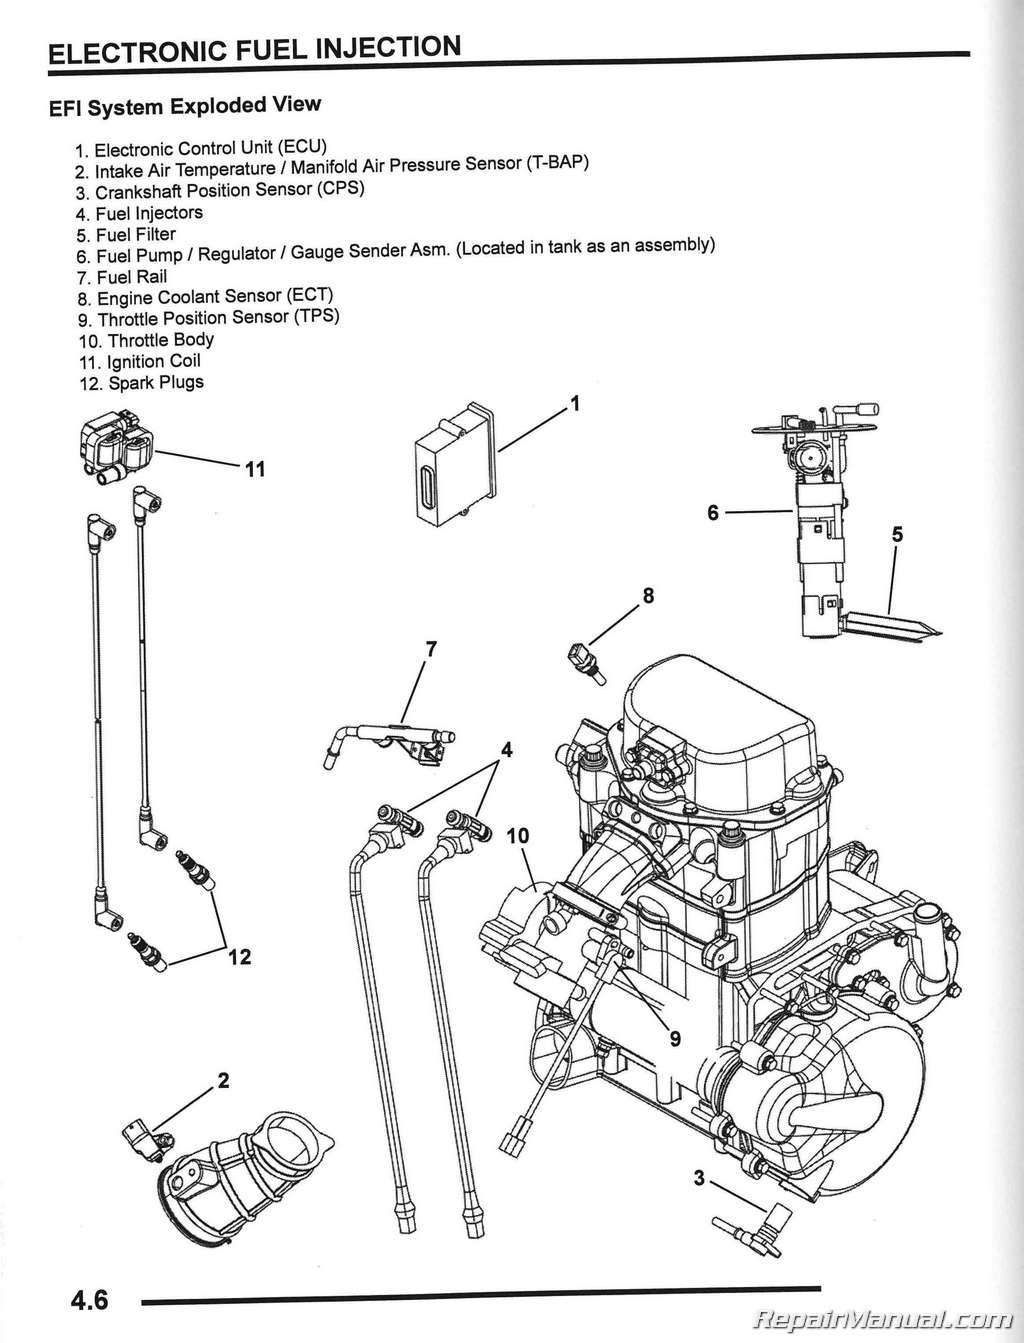 polaris rzr wiring diagram polaris rzr air filter diagram wiring diagram data polaris rzr 1000 wiring diagram polaris rzr air filter diagram wiring